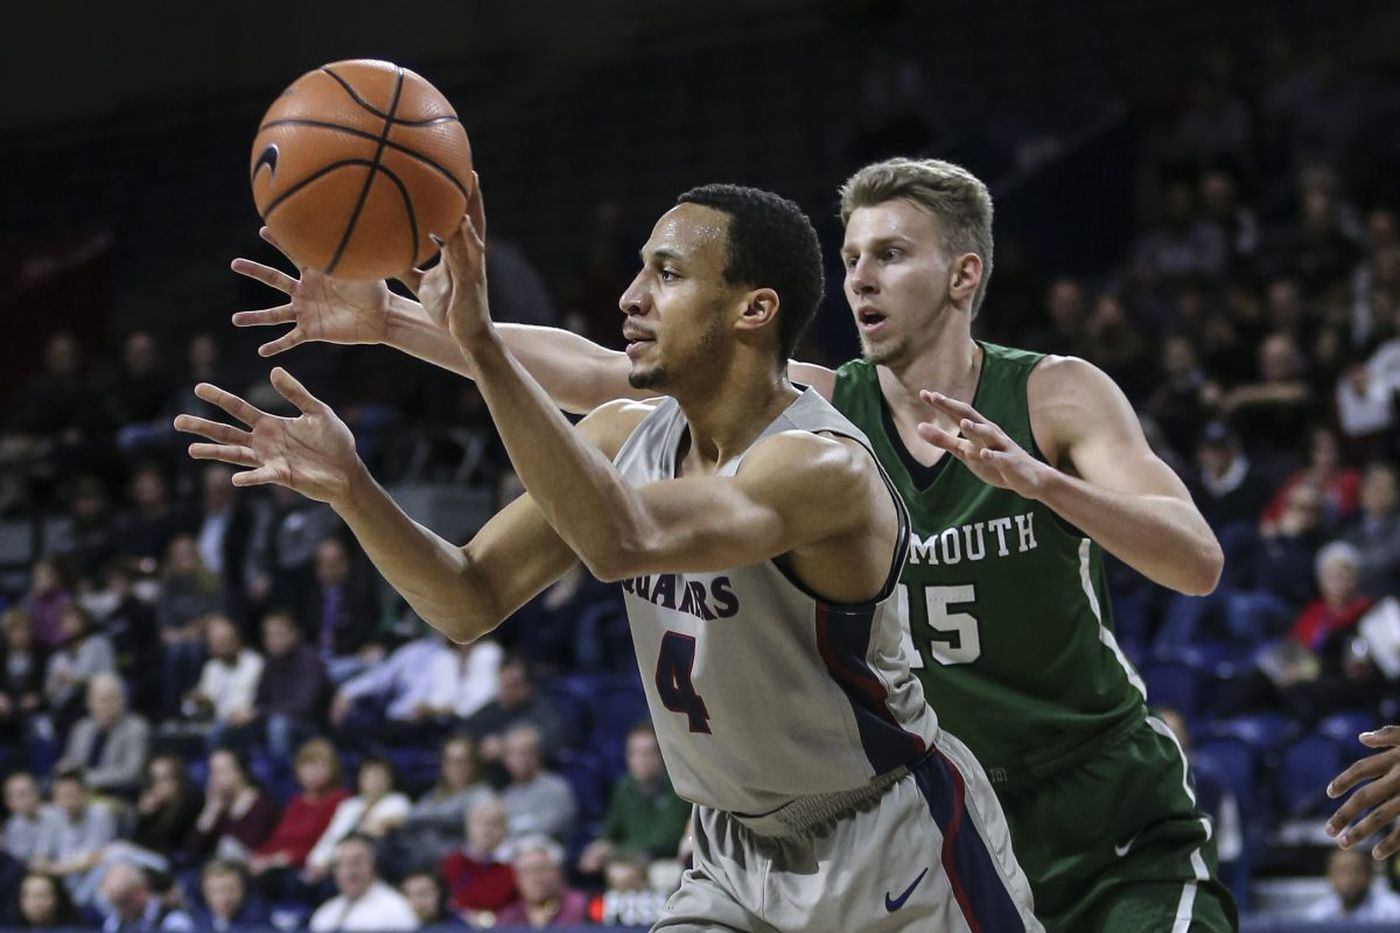 Penn's return to top of Ivy League basketball fueled by finding better shots   Mike Jensen